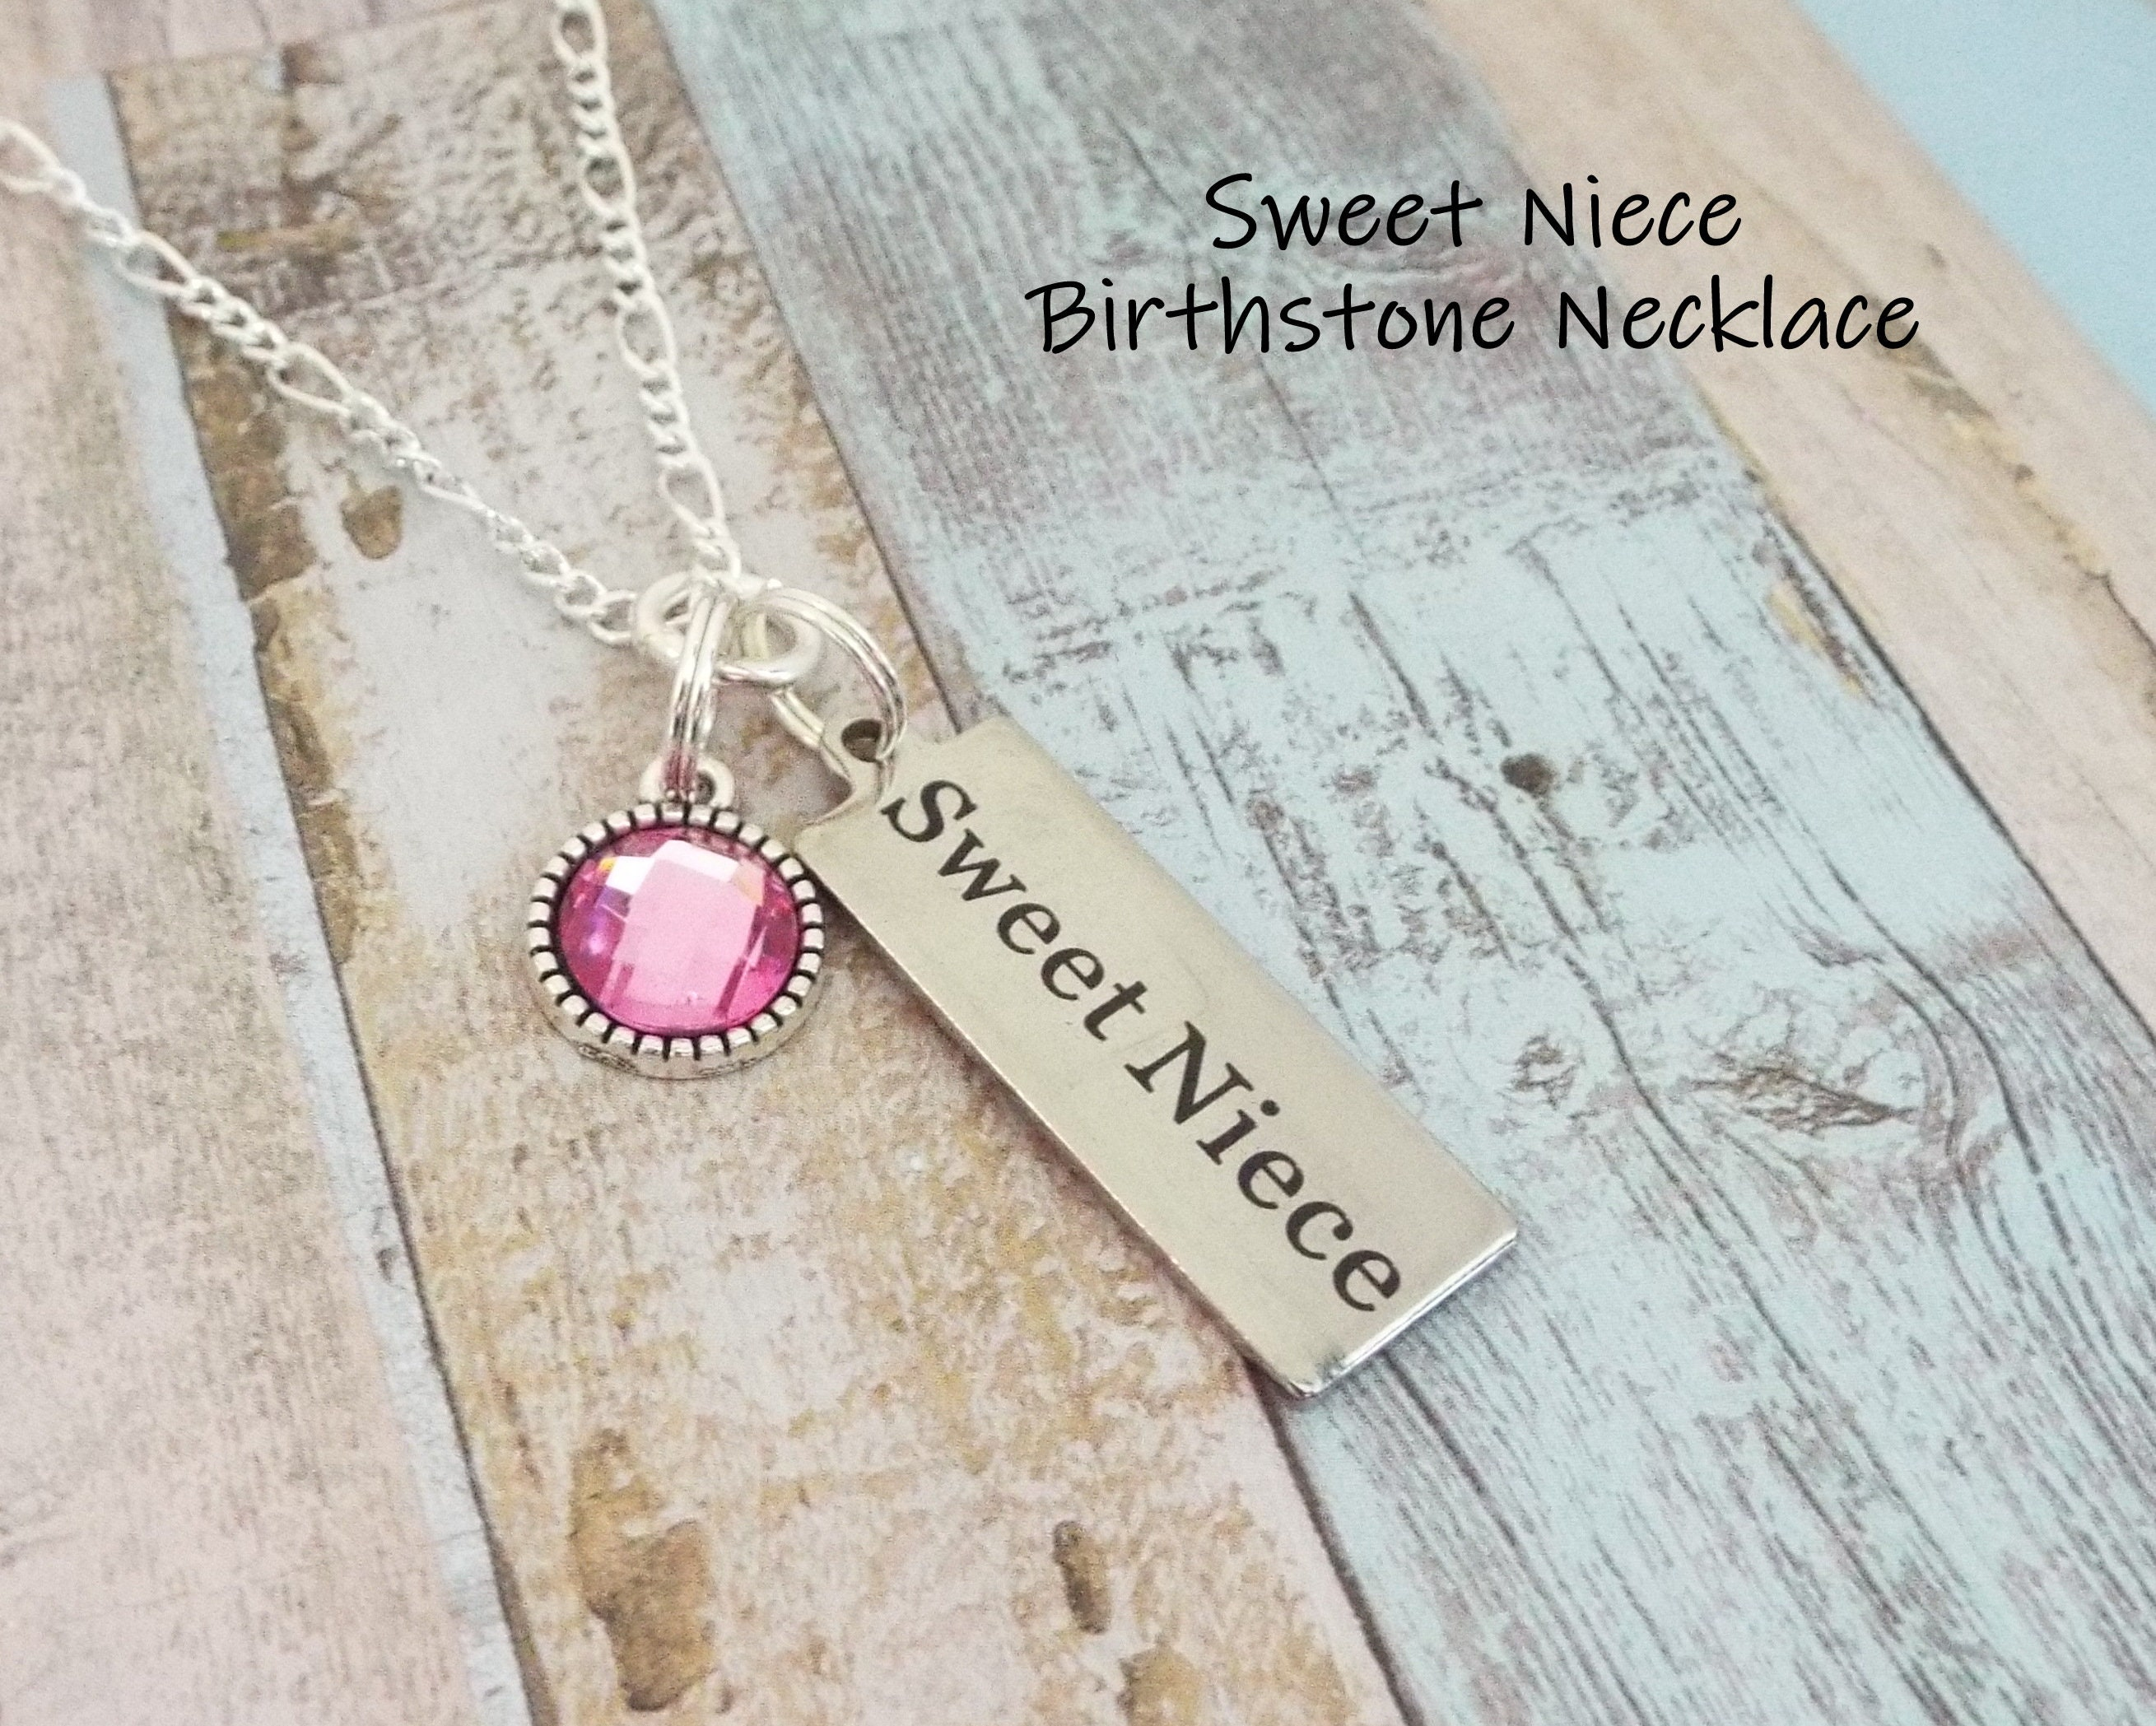 Niece Birthday Gift Aunt To For Jewelry Birthstone Girl Her Necklace